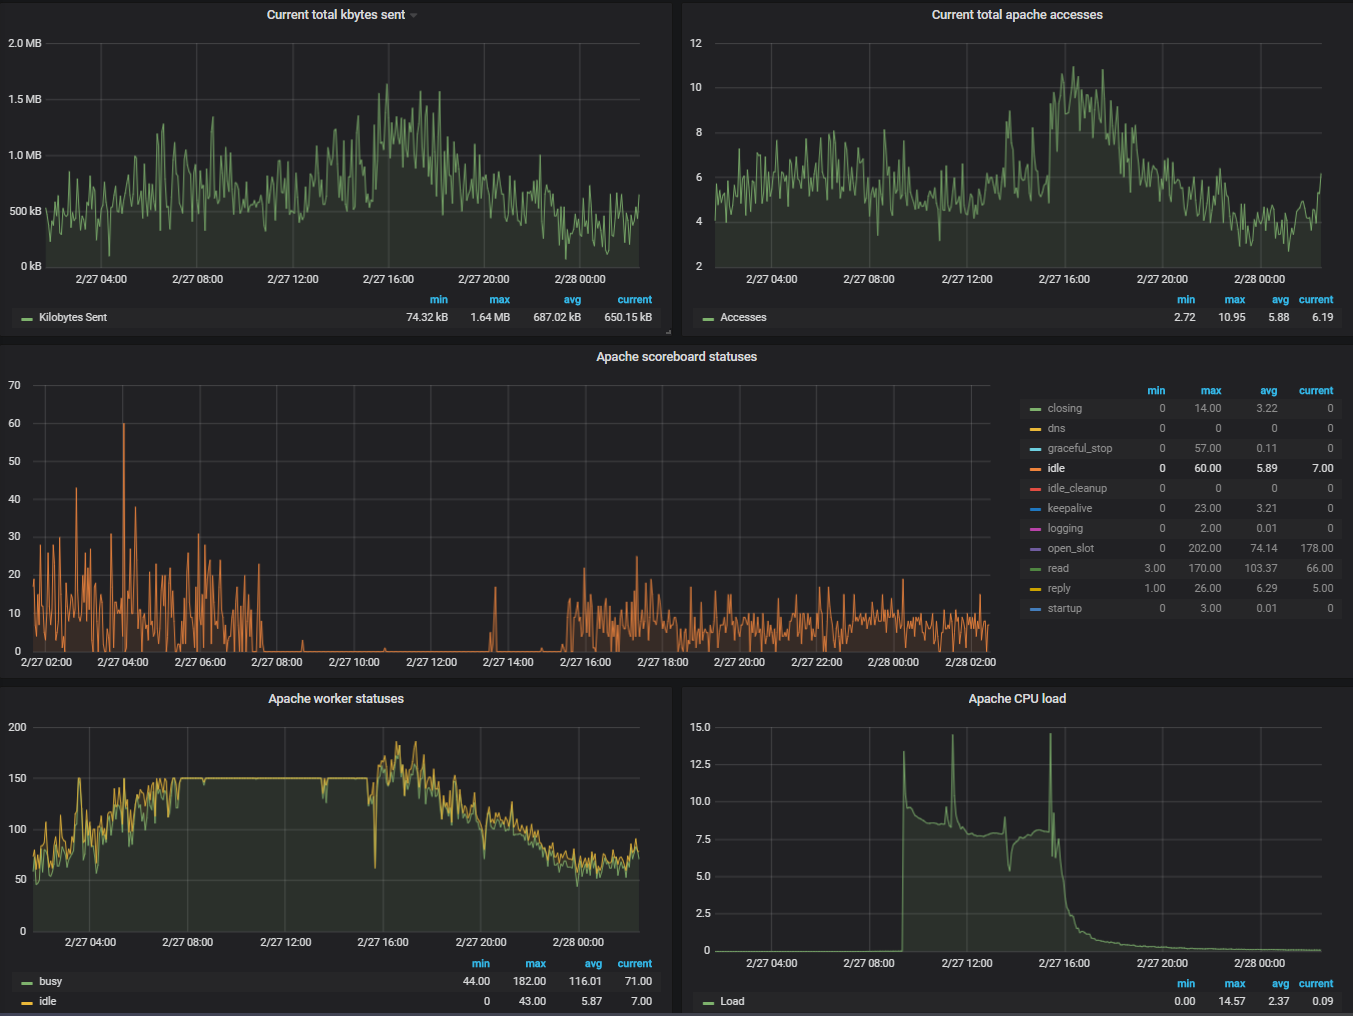 Apache exporter dashboard with worker issue